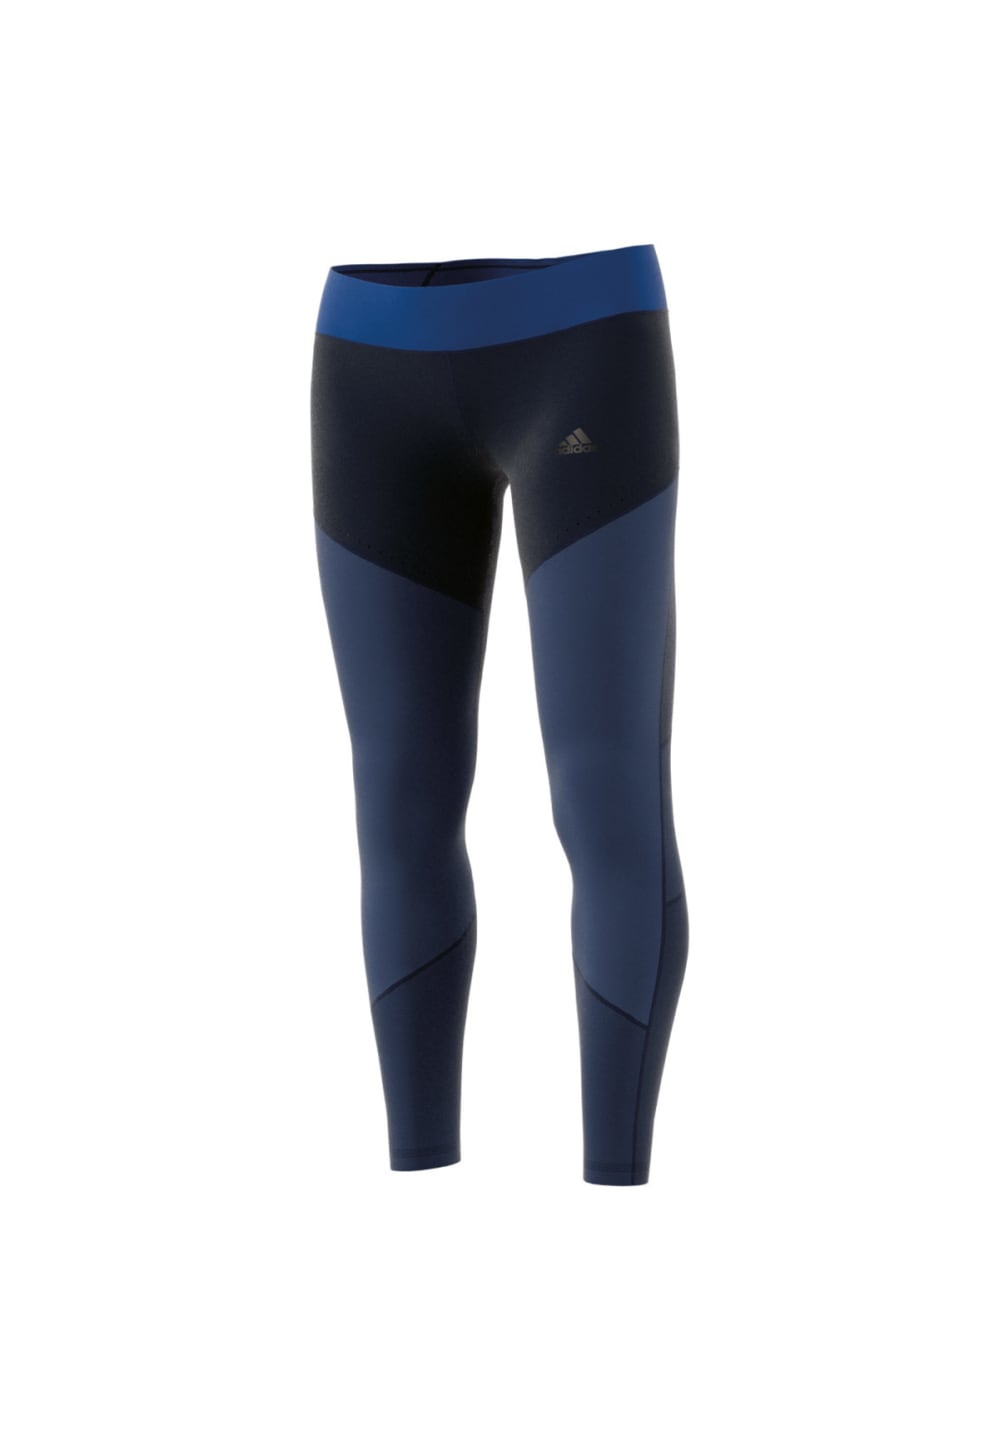 adidas Wow Drop 1 Tight - Laufhosen für Damen - Blau, Gr. L